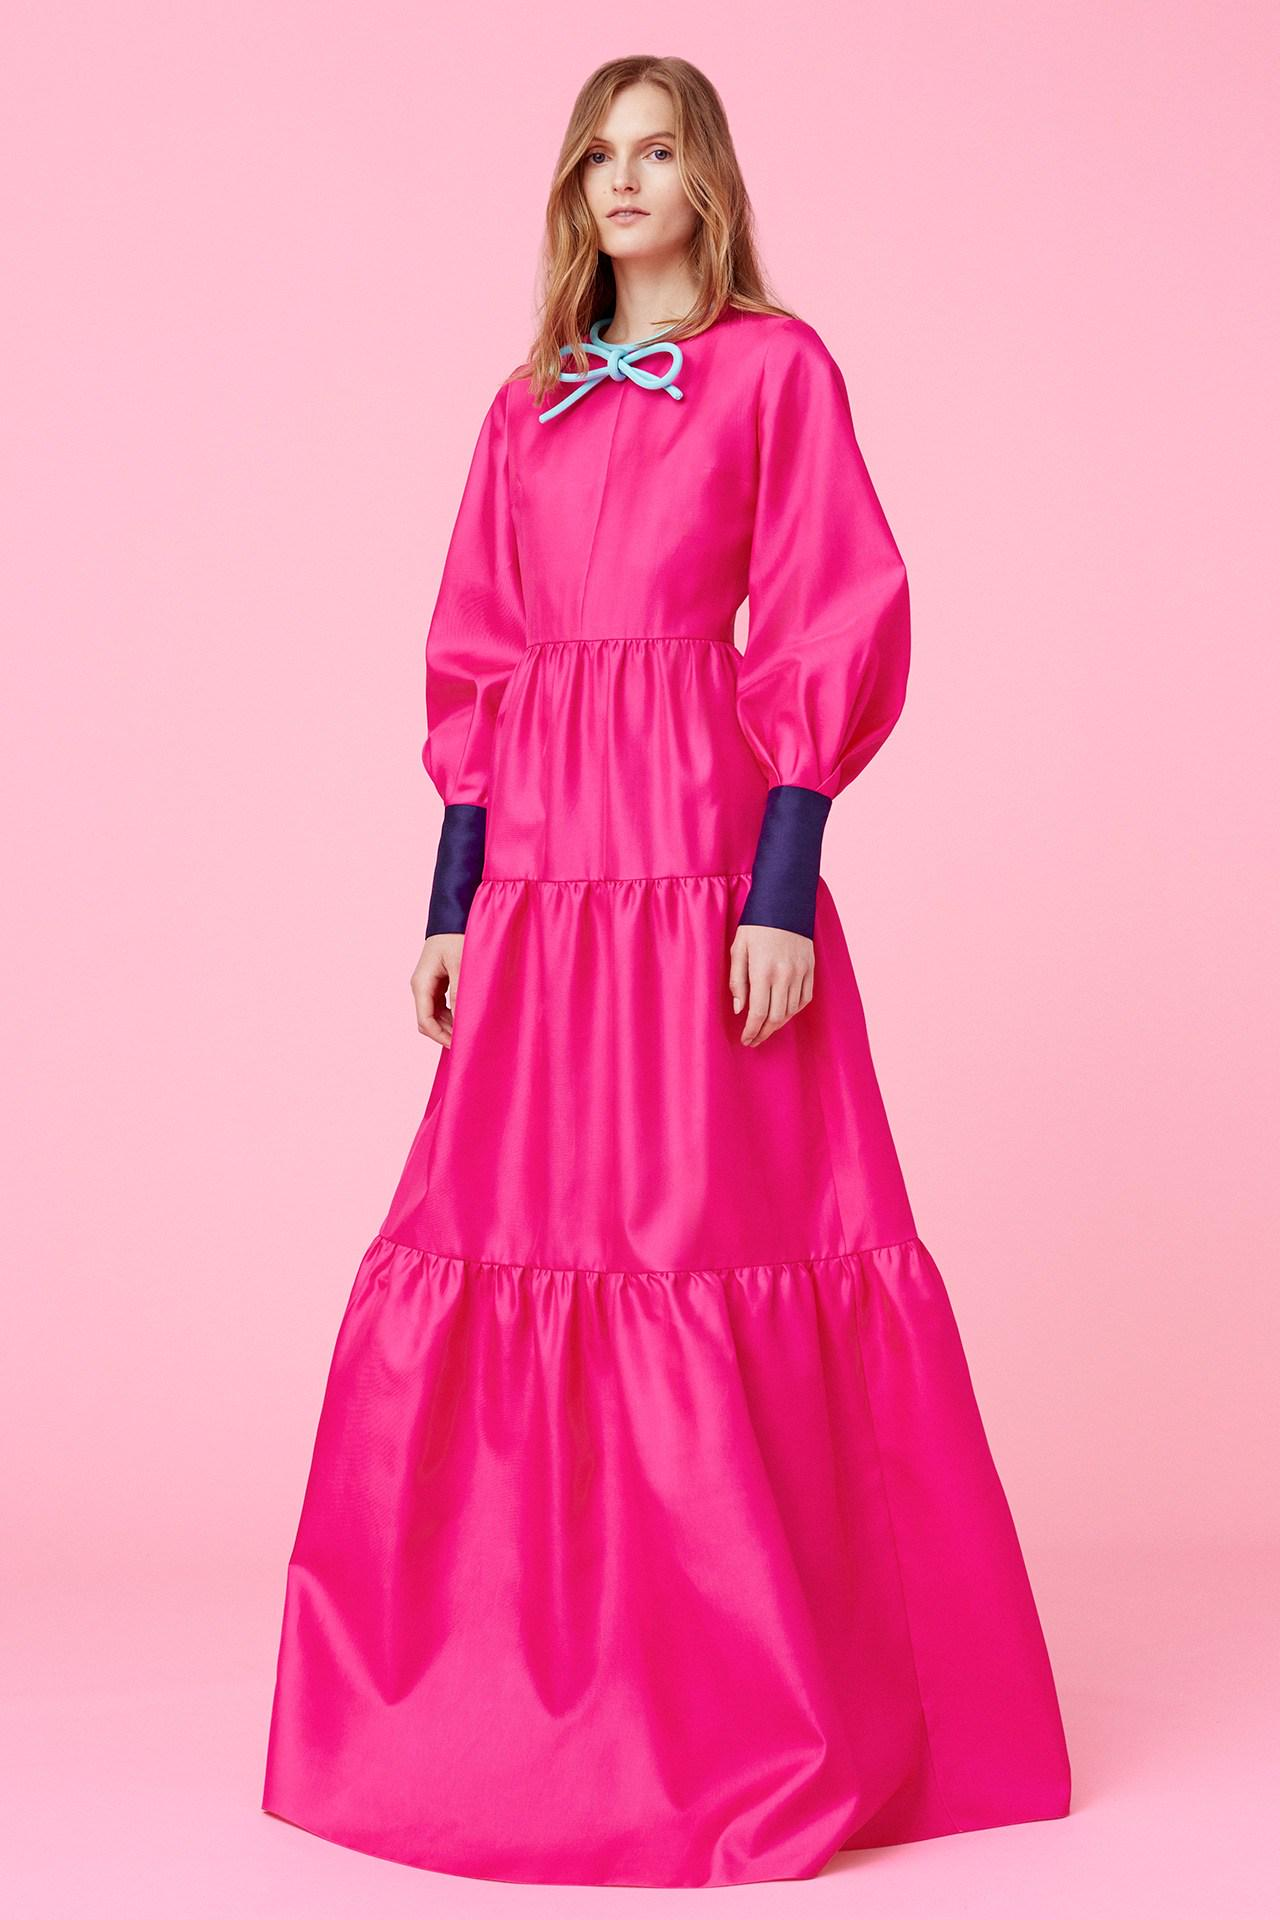 See how Roksanda is celebrating a decade in fashion - http://t.co/UFfWs2225t http://t.co/D9FksAYb1d